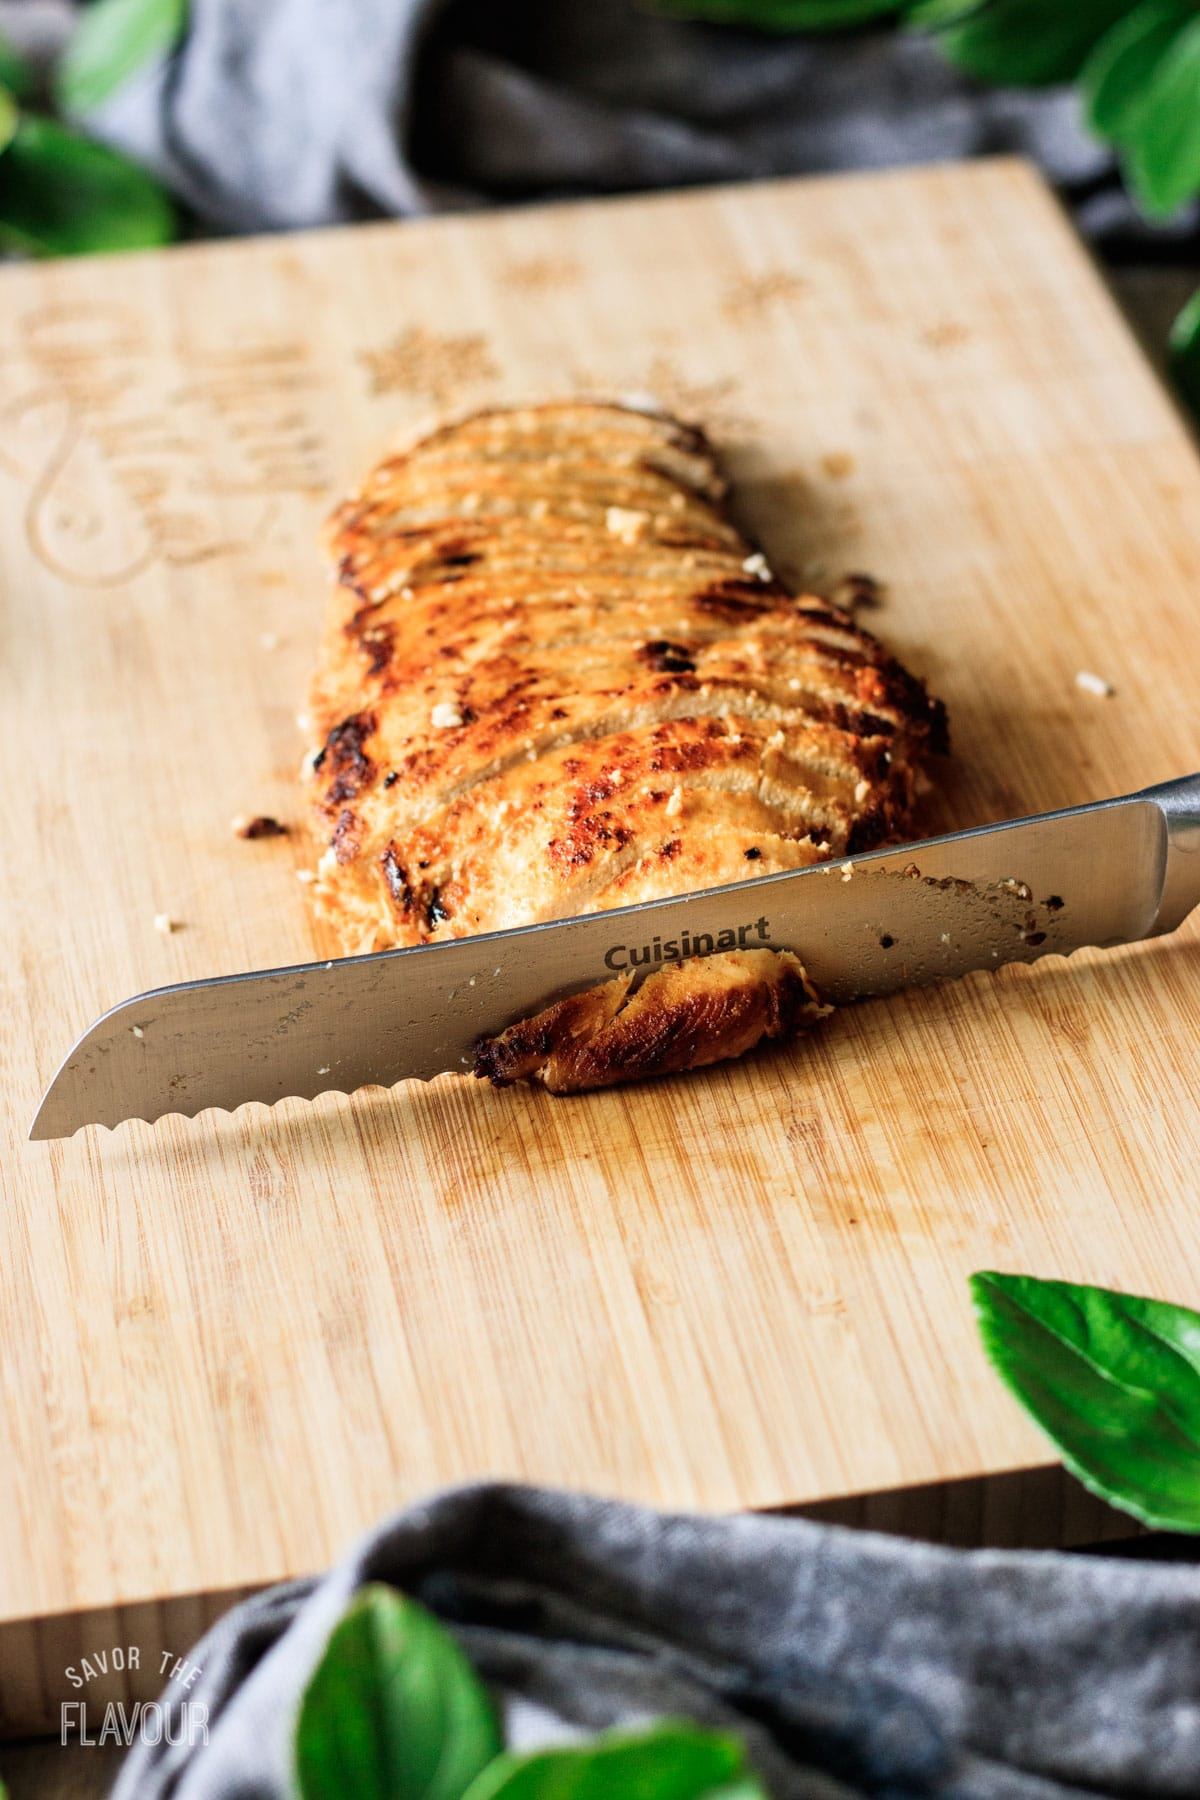 slicing the cooked chicken breast with a serrated knife